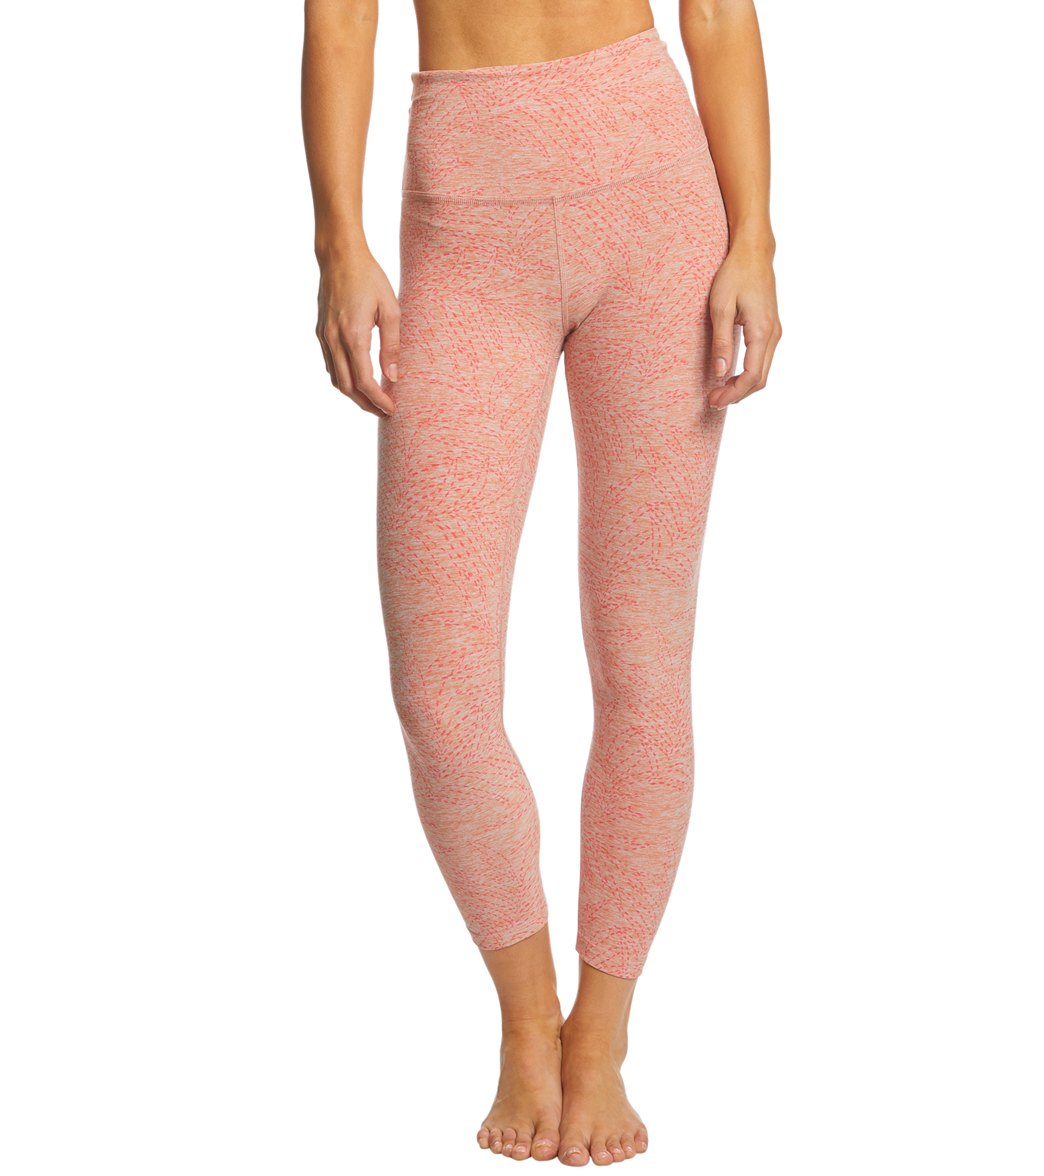 090ac79942300 Beyond Yoga Jungle Fern Spacedye High Waisted Yoga Capris at YogaOutlet.com  - Free Shipping